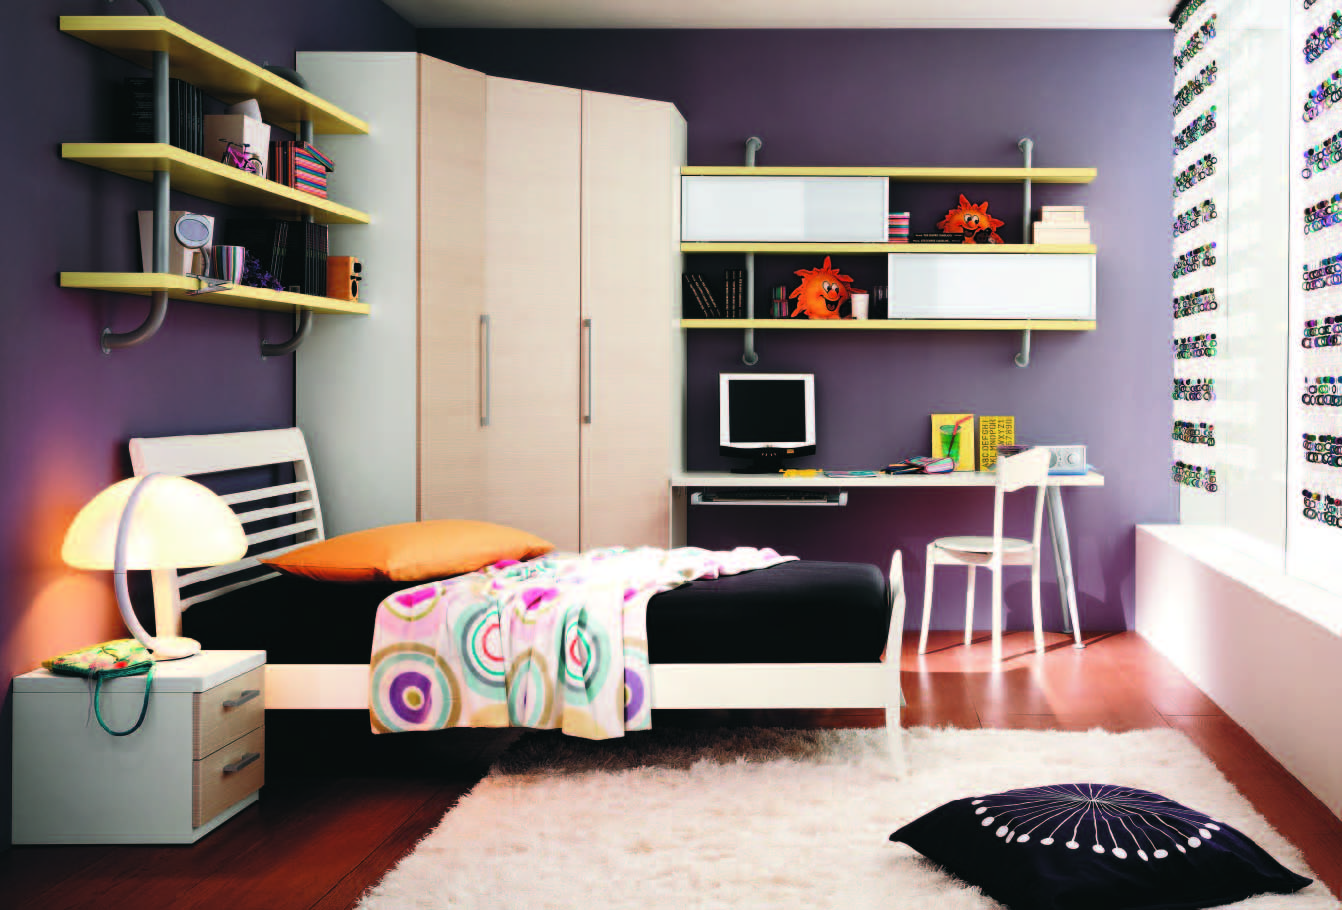 Fabulous modern themed rooms for boys and girls - Bedrooms for girls ...